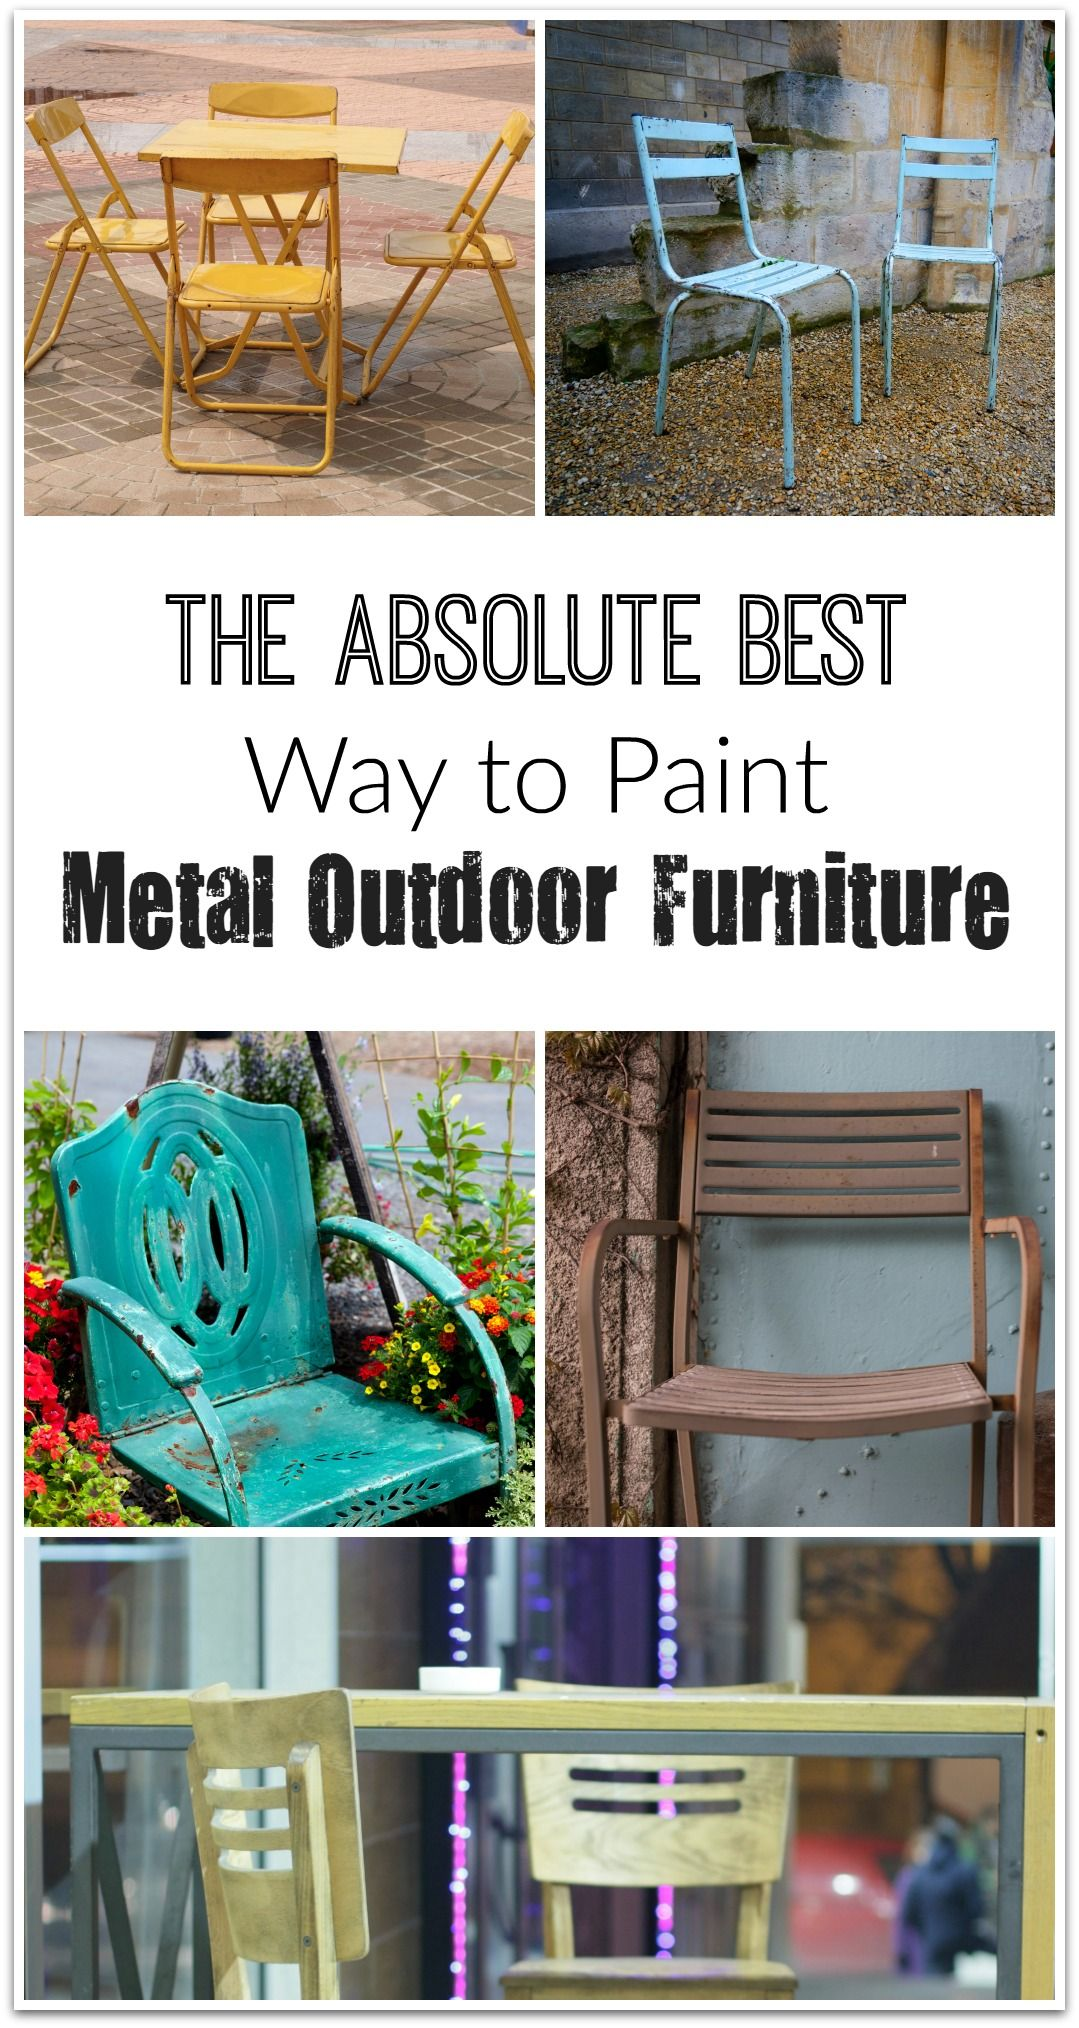 People Are Starting To Think About Fixing Up Their Yards And Outdoor Furniture If You Re Thinking Painting Your Metal Here